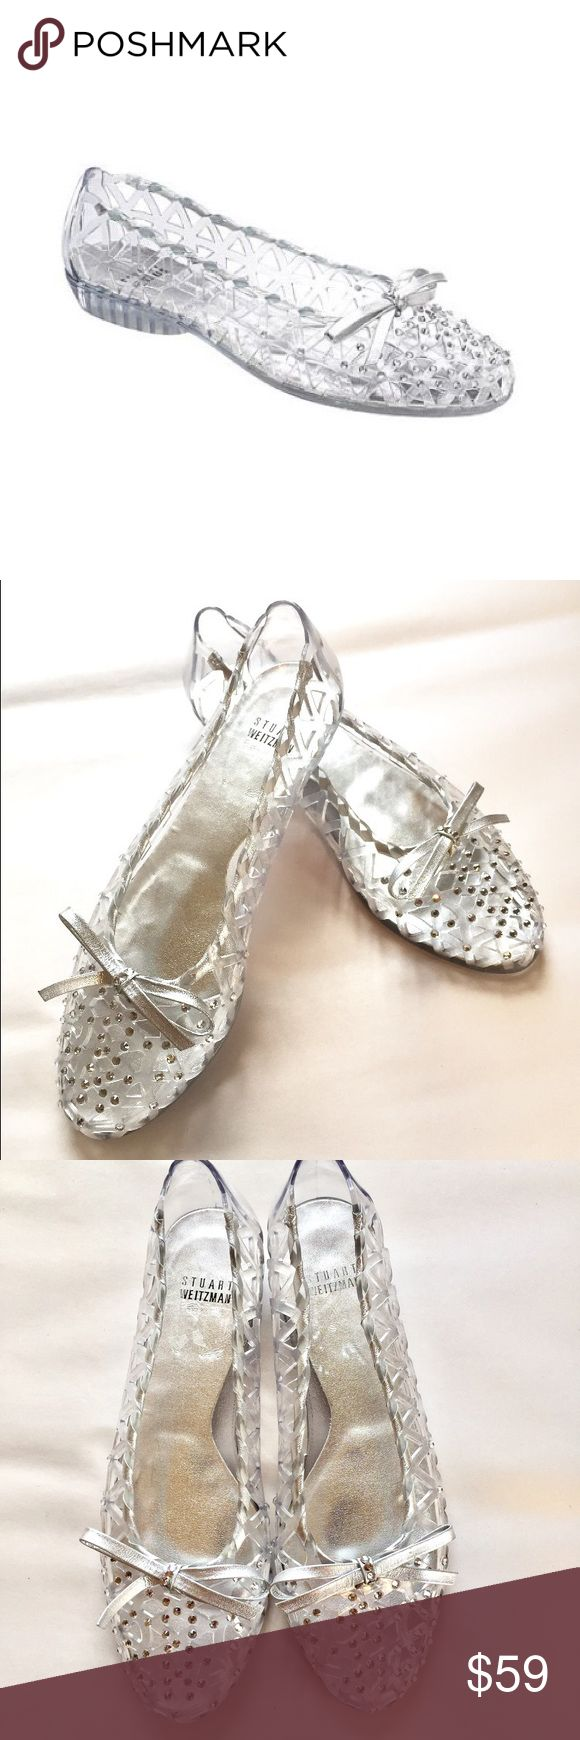 Stuart Weitzman jellystone silver ballet flats Stuart Weitzaman Swarovski crystal accented ballet flats. Gently used- in near-perfect condition! Size 7. Stuart Weitzman Shoes Flats & Loafers